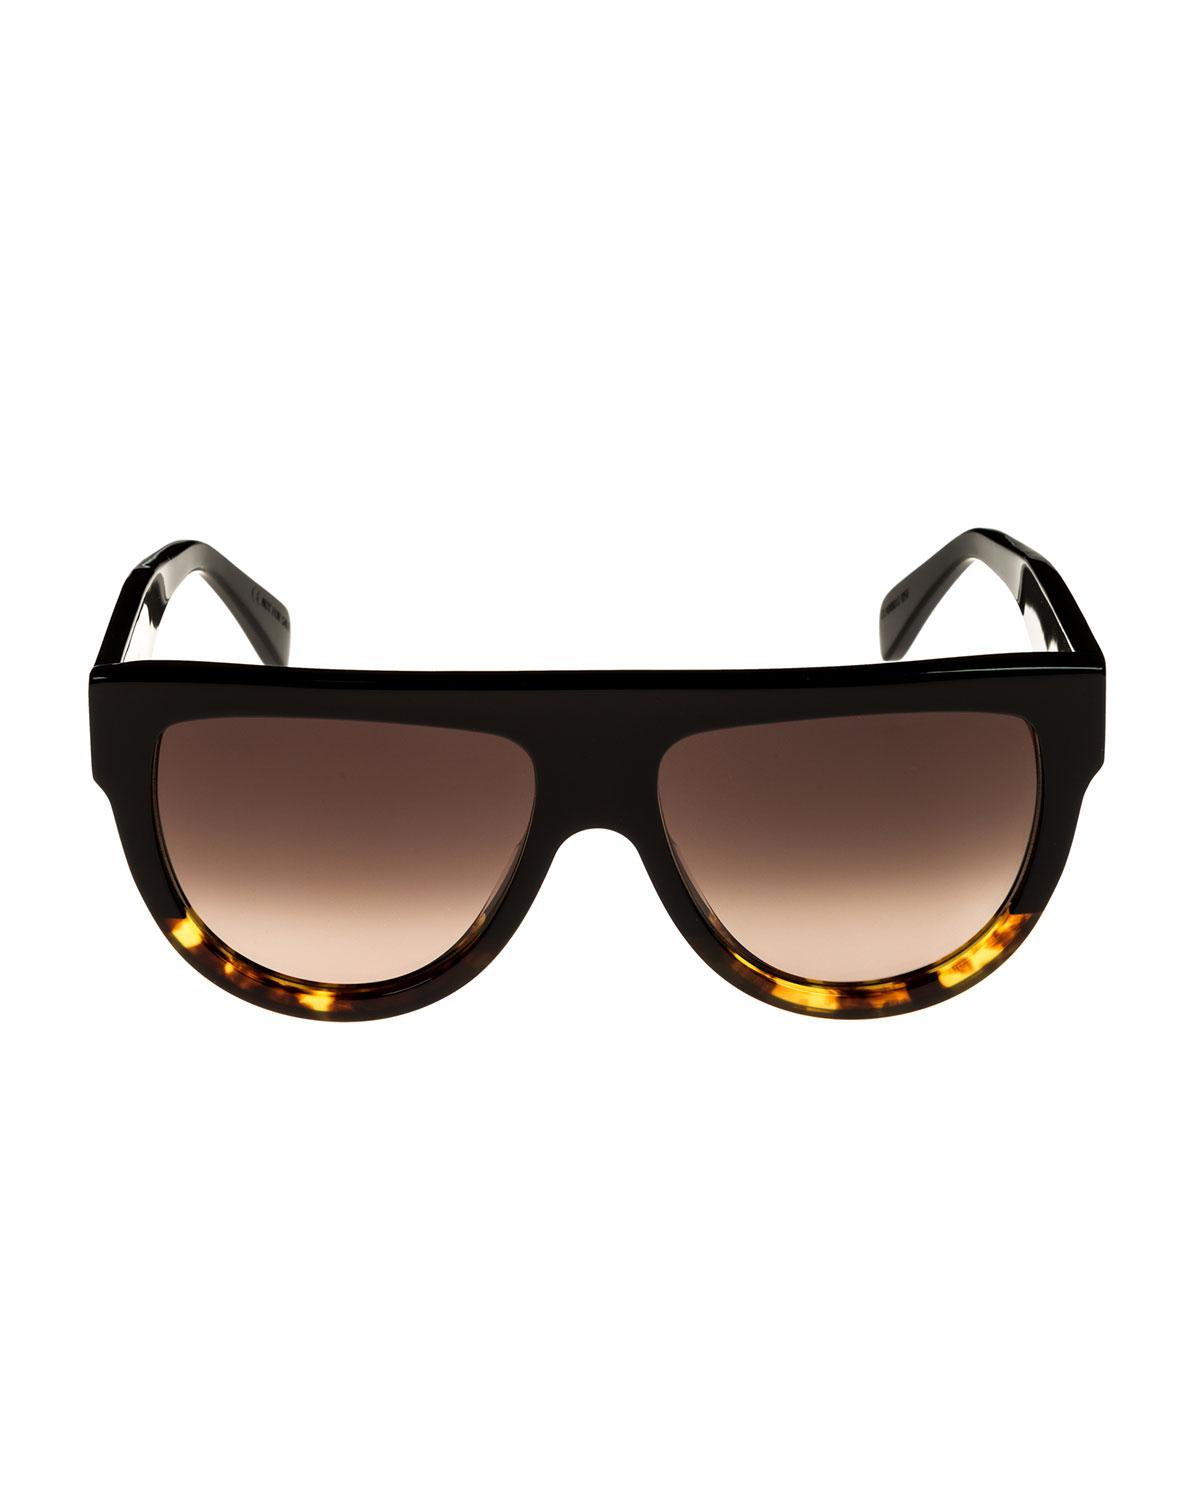 1d434c1005 Lyst - Céline Flattop Two-tone Shield Adjusted-fit Sunglasses in Black